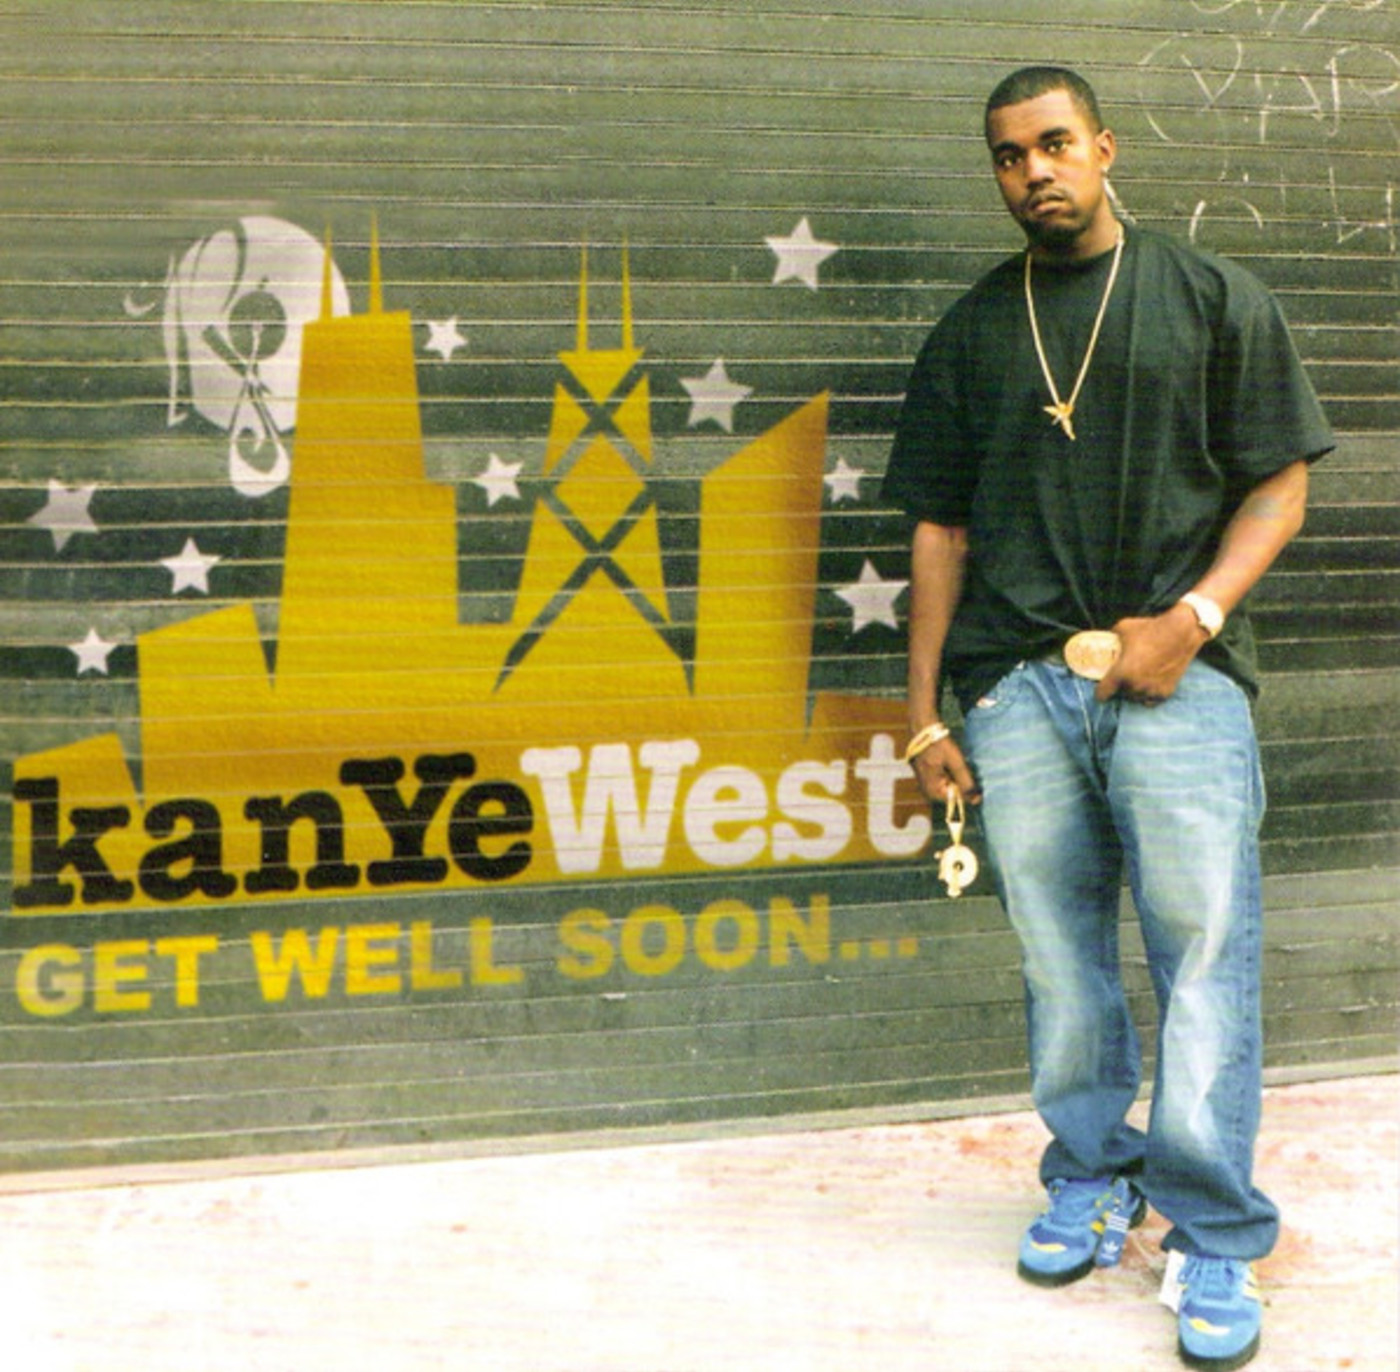 rapper-mix-tape-get-well-soon-kanye-west